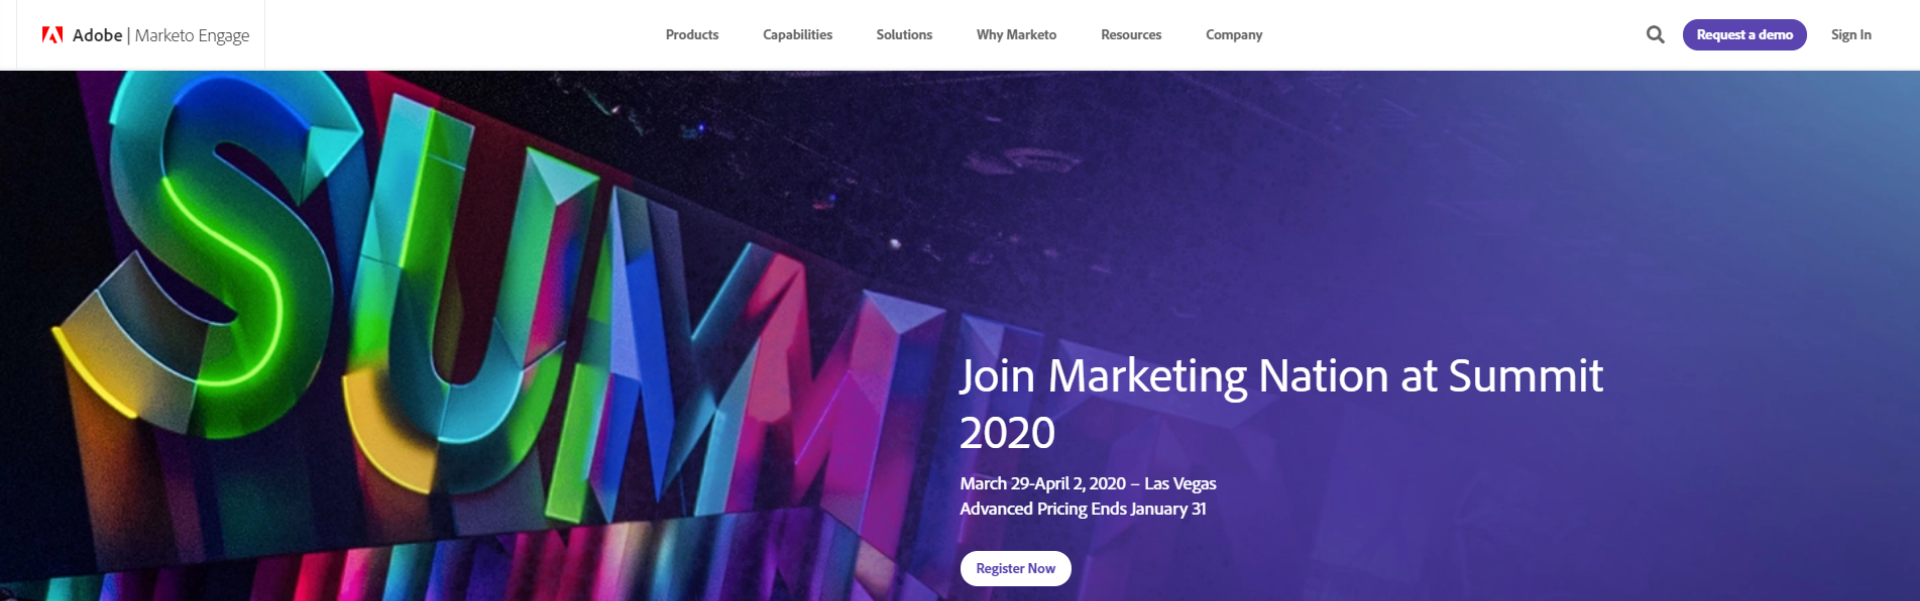 Marketo Adobe